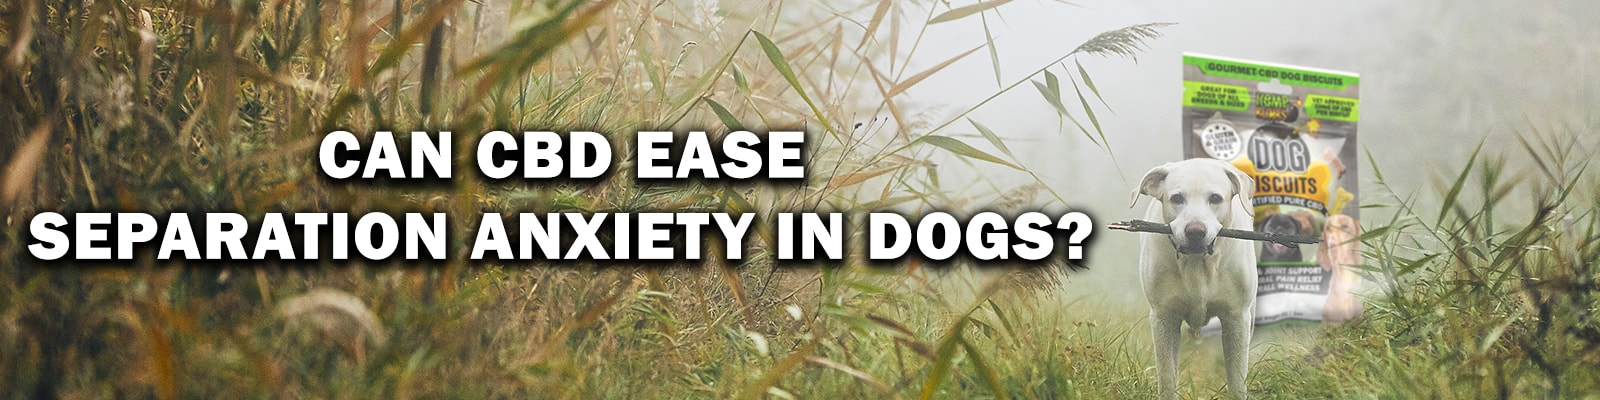 CBD Dog Treats for Separation Anxiety in Dogs